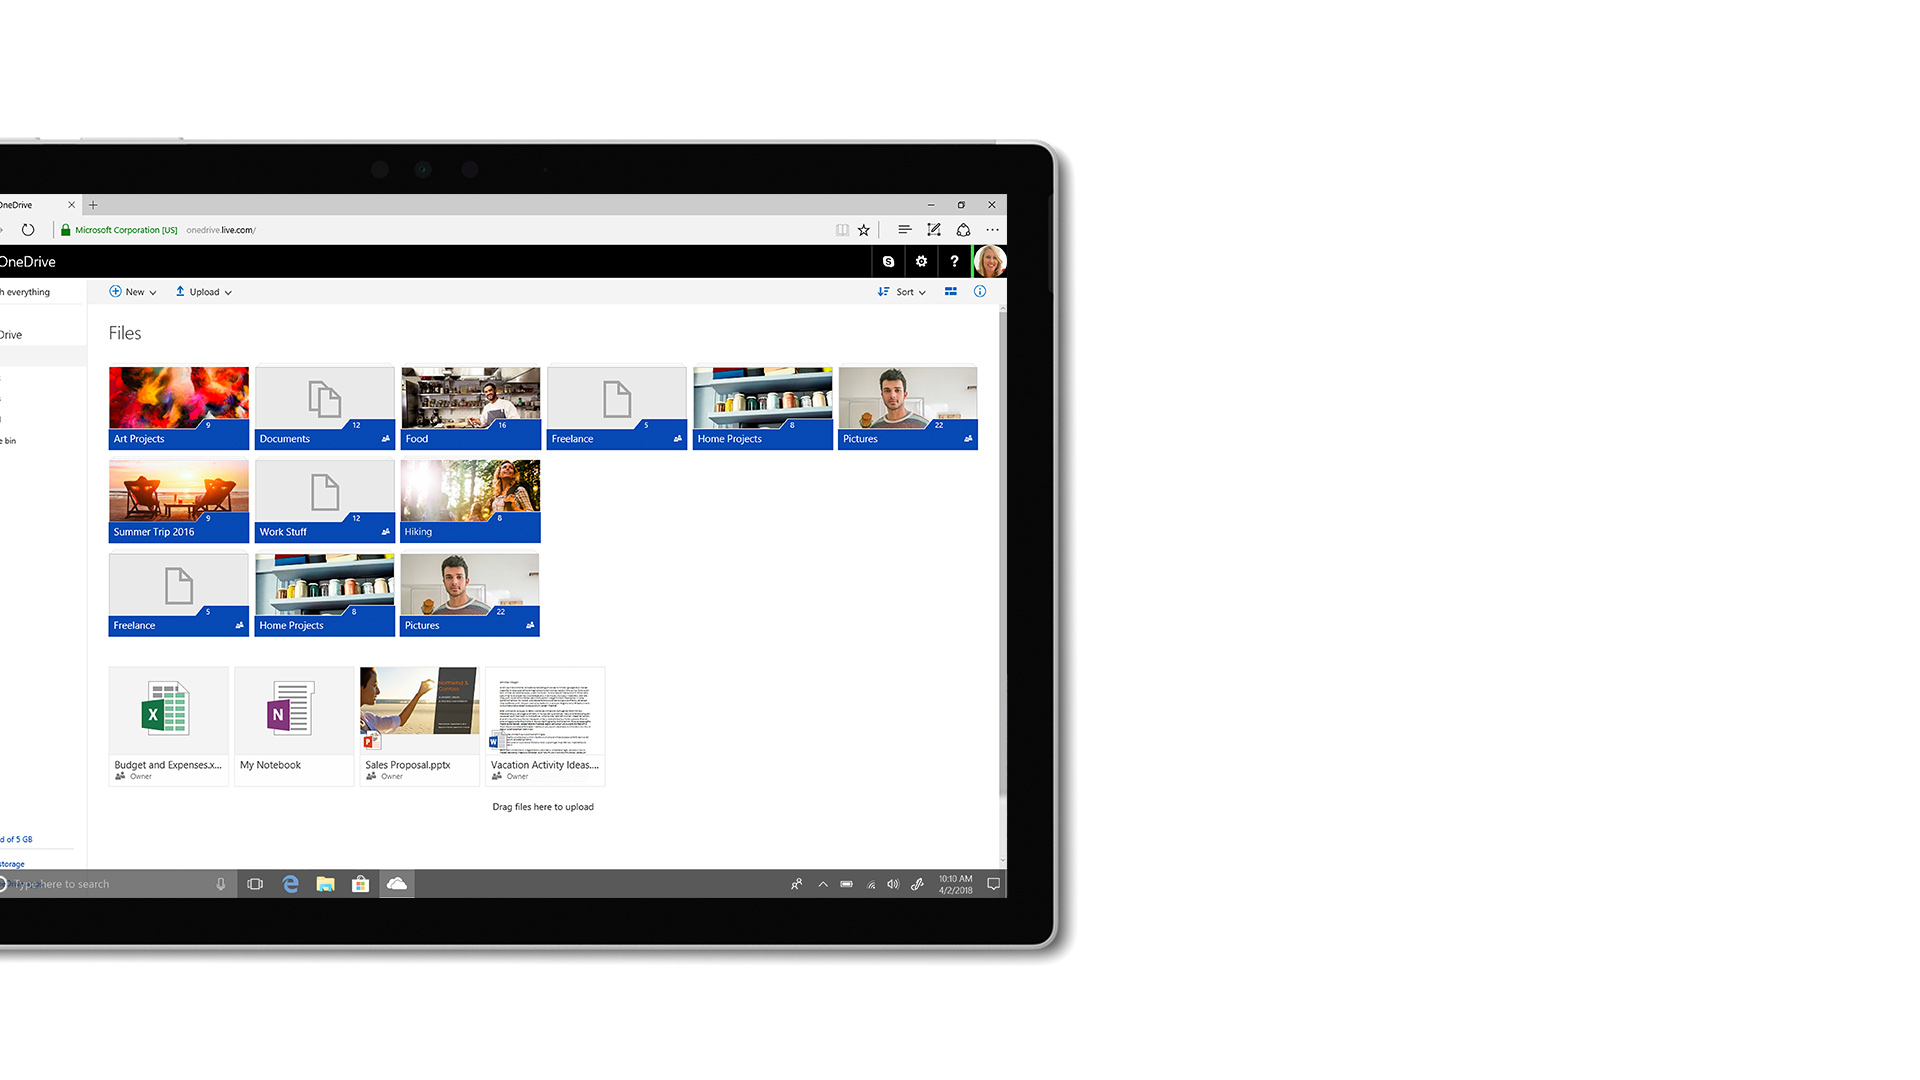 Image of the user interface of Microsoft OneDrive